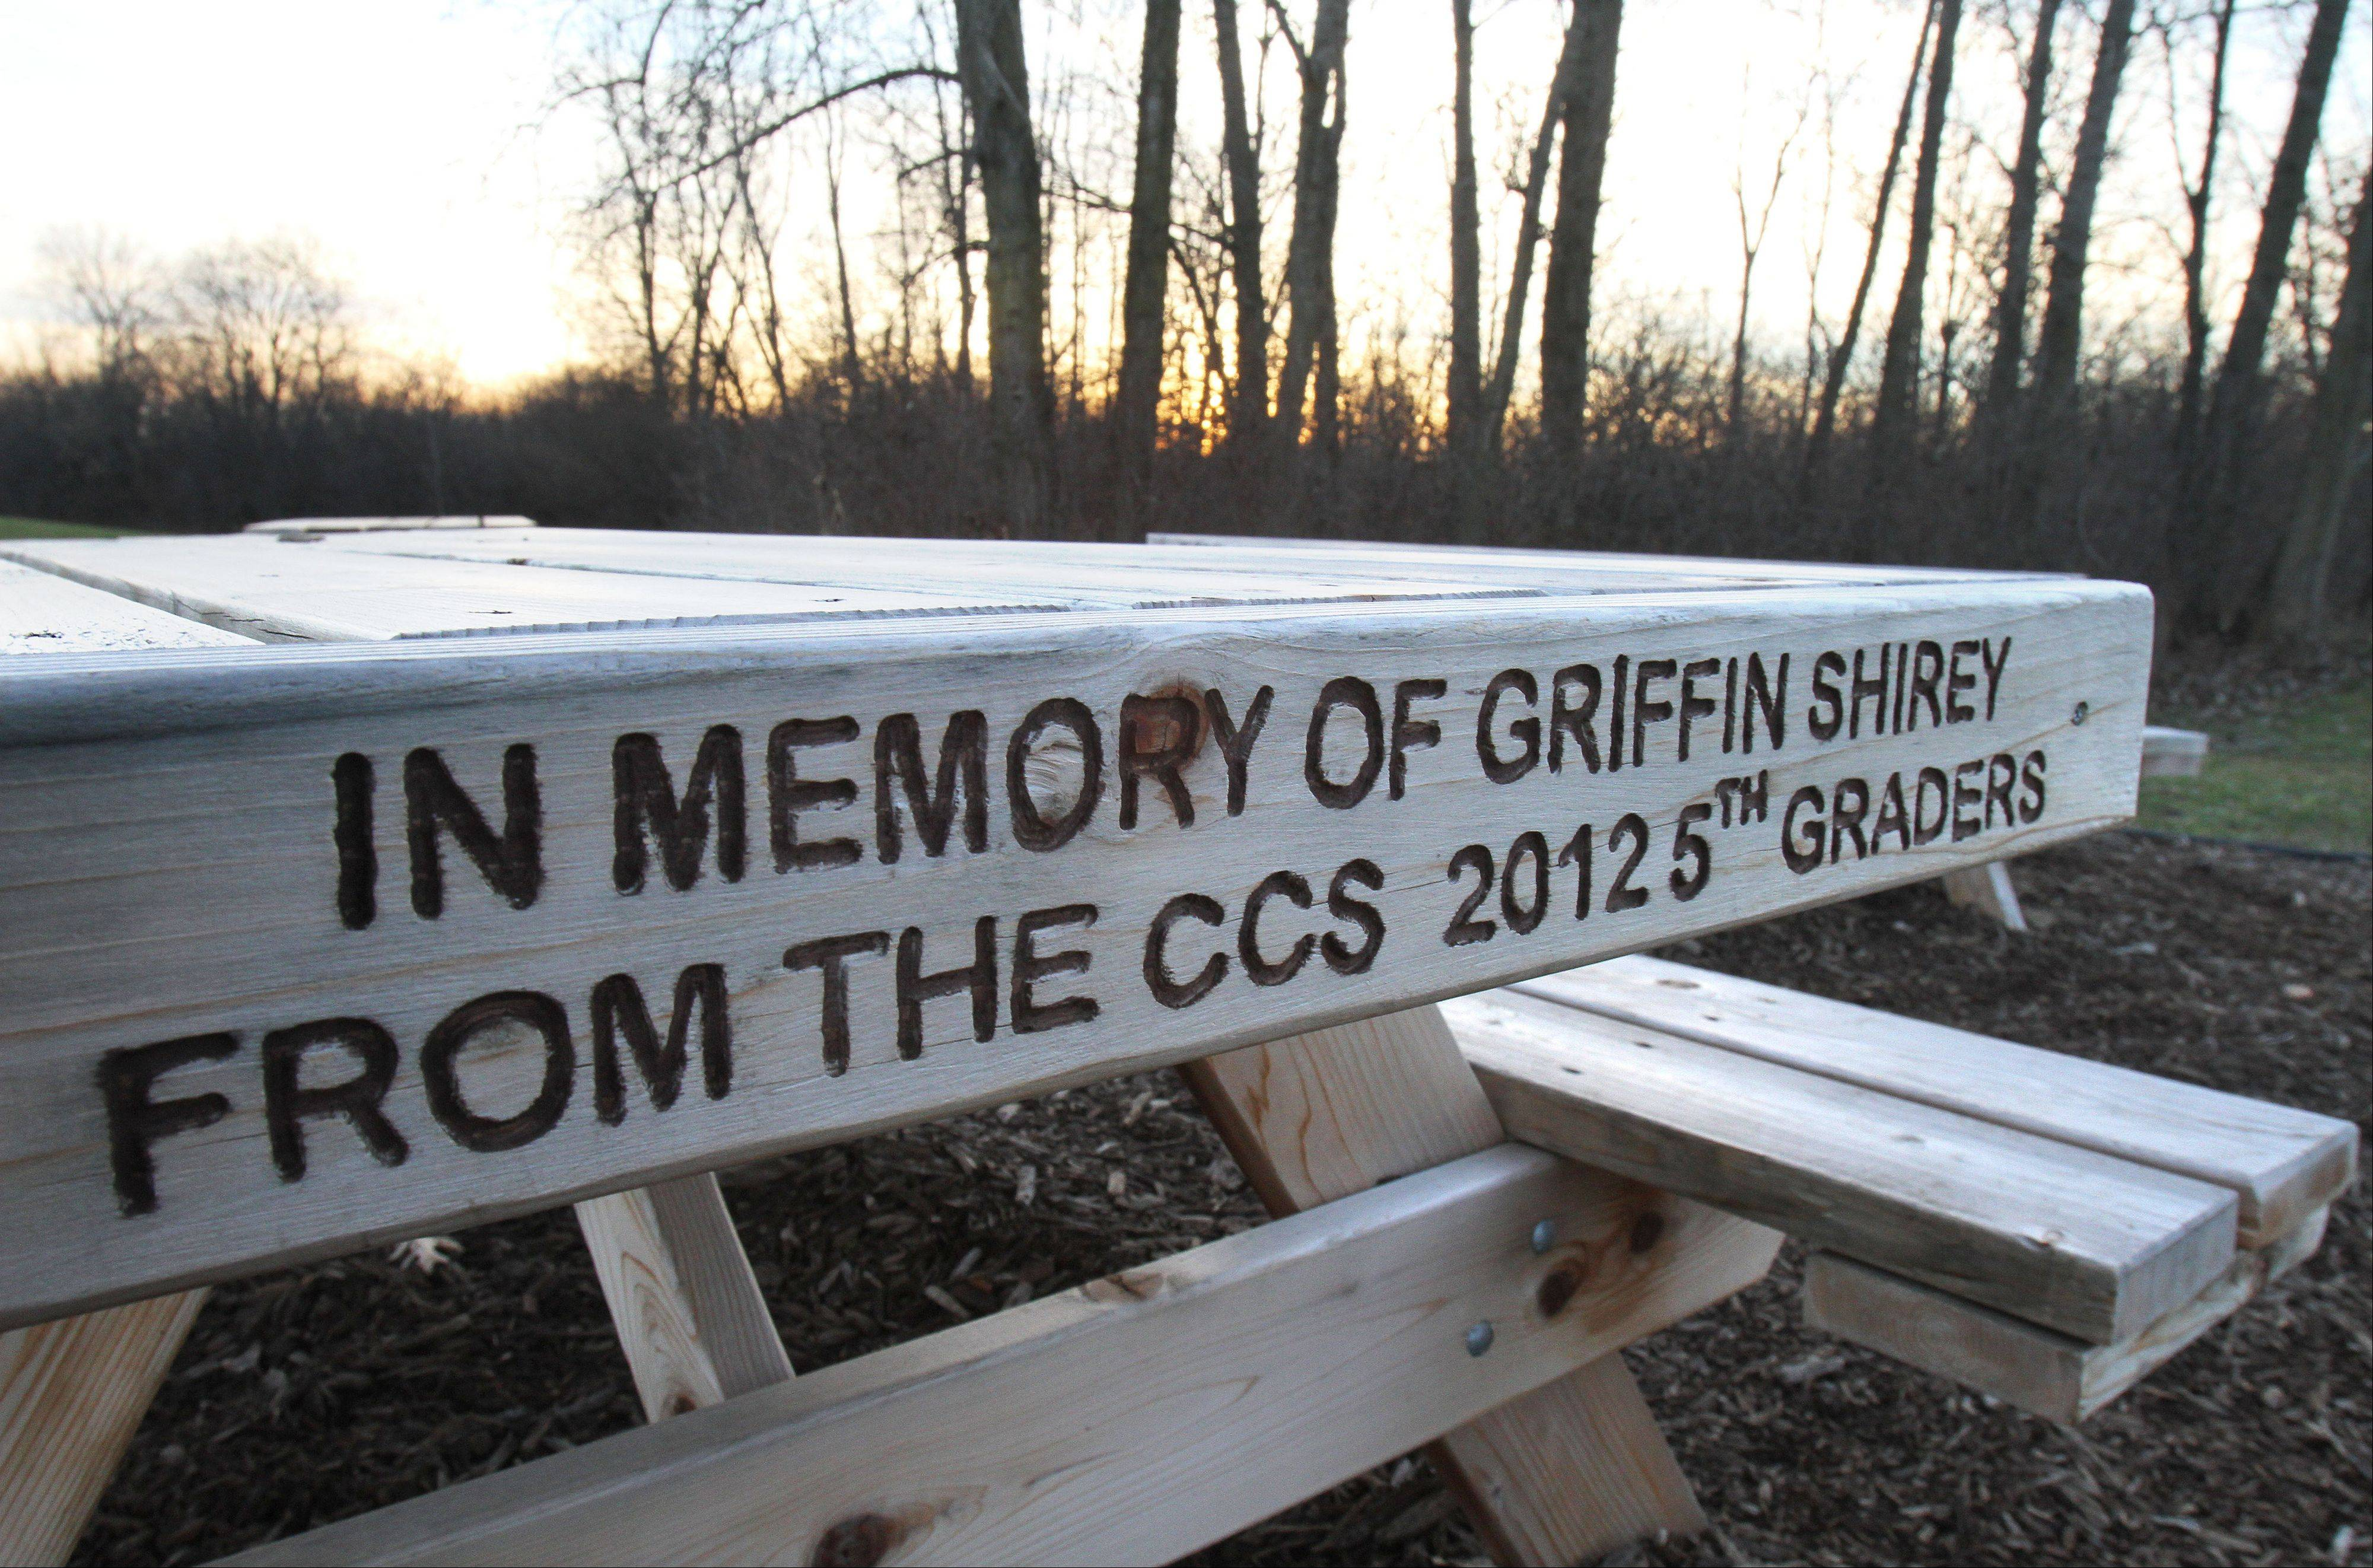 The fifth-grade class at Cotton Creek School in Island Lake donated a picnic bench in memory of Griffin Shirey, who was killed last year in a car crash. The bench sits behind the school.